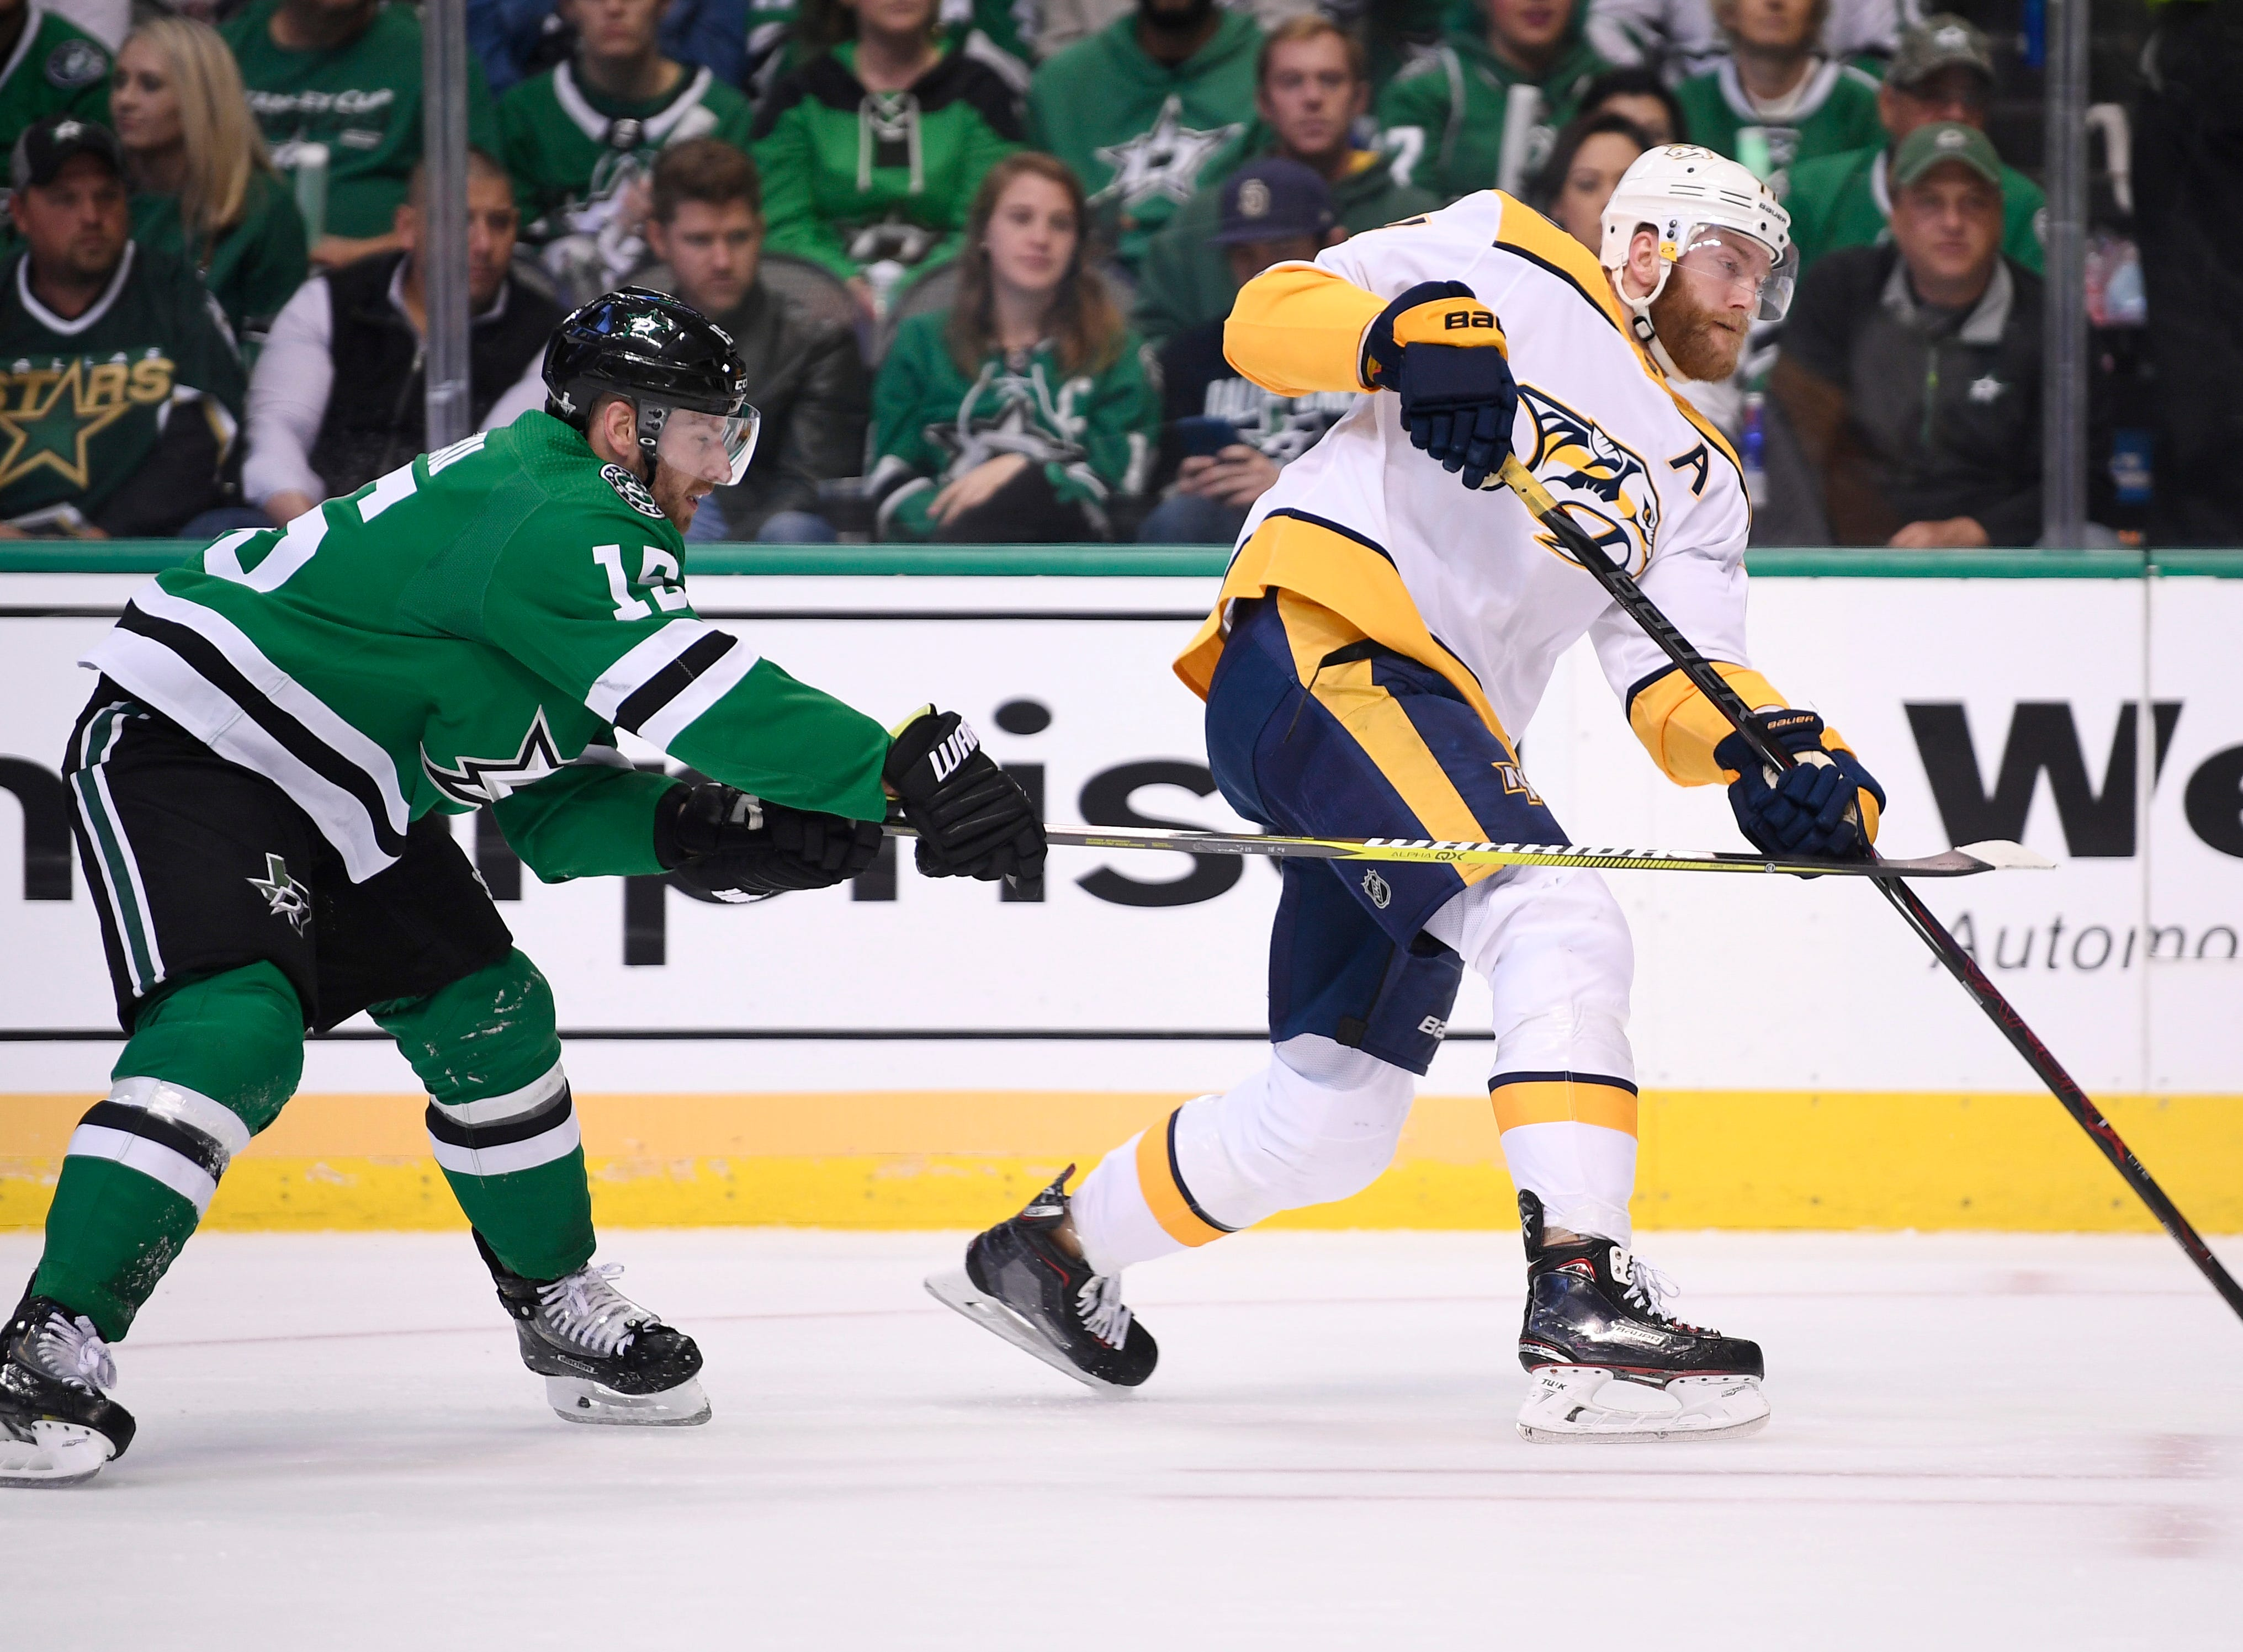 Nashville Predators defenseman Mattias Ekholm (14) takes a shot defended by Dallas Stars left wing Blake Comeau (15) during the first period of the divisional semifinal game at the American Airlines Center in Dallas, Texas, Monday, April 22, 2019.